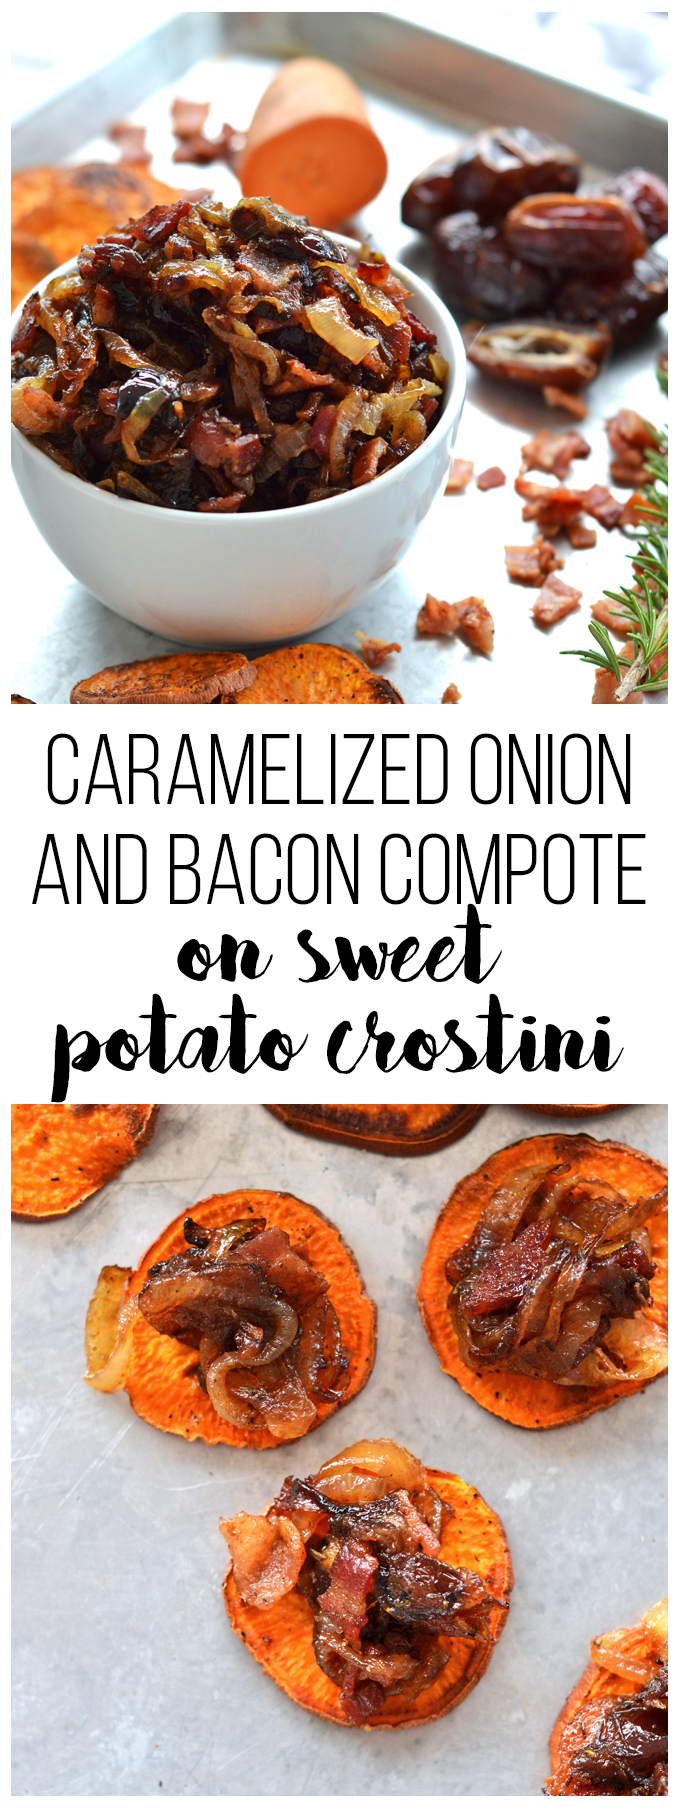 This Caramelized Onion & Bacon Compote on Sweet Potato Crostini is the perfect appetizer that can be served warm or room temperature! Whole30 and Paleo!